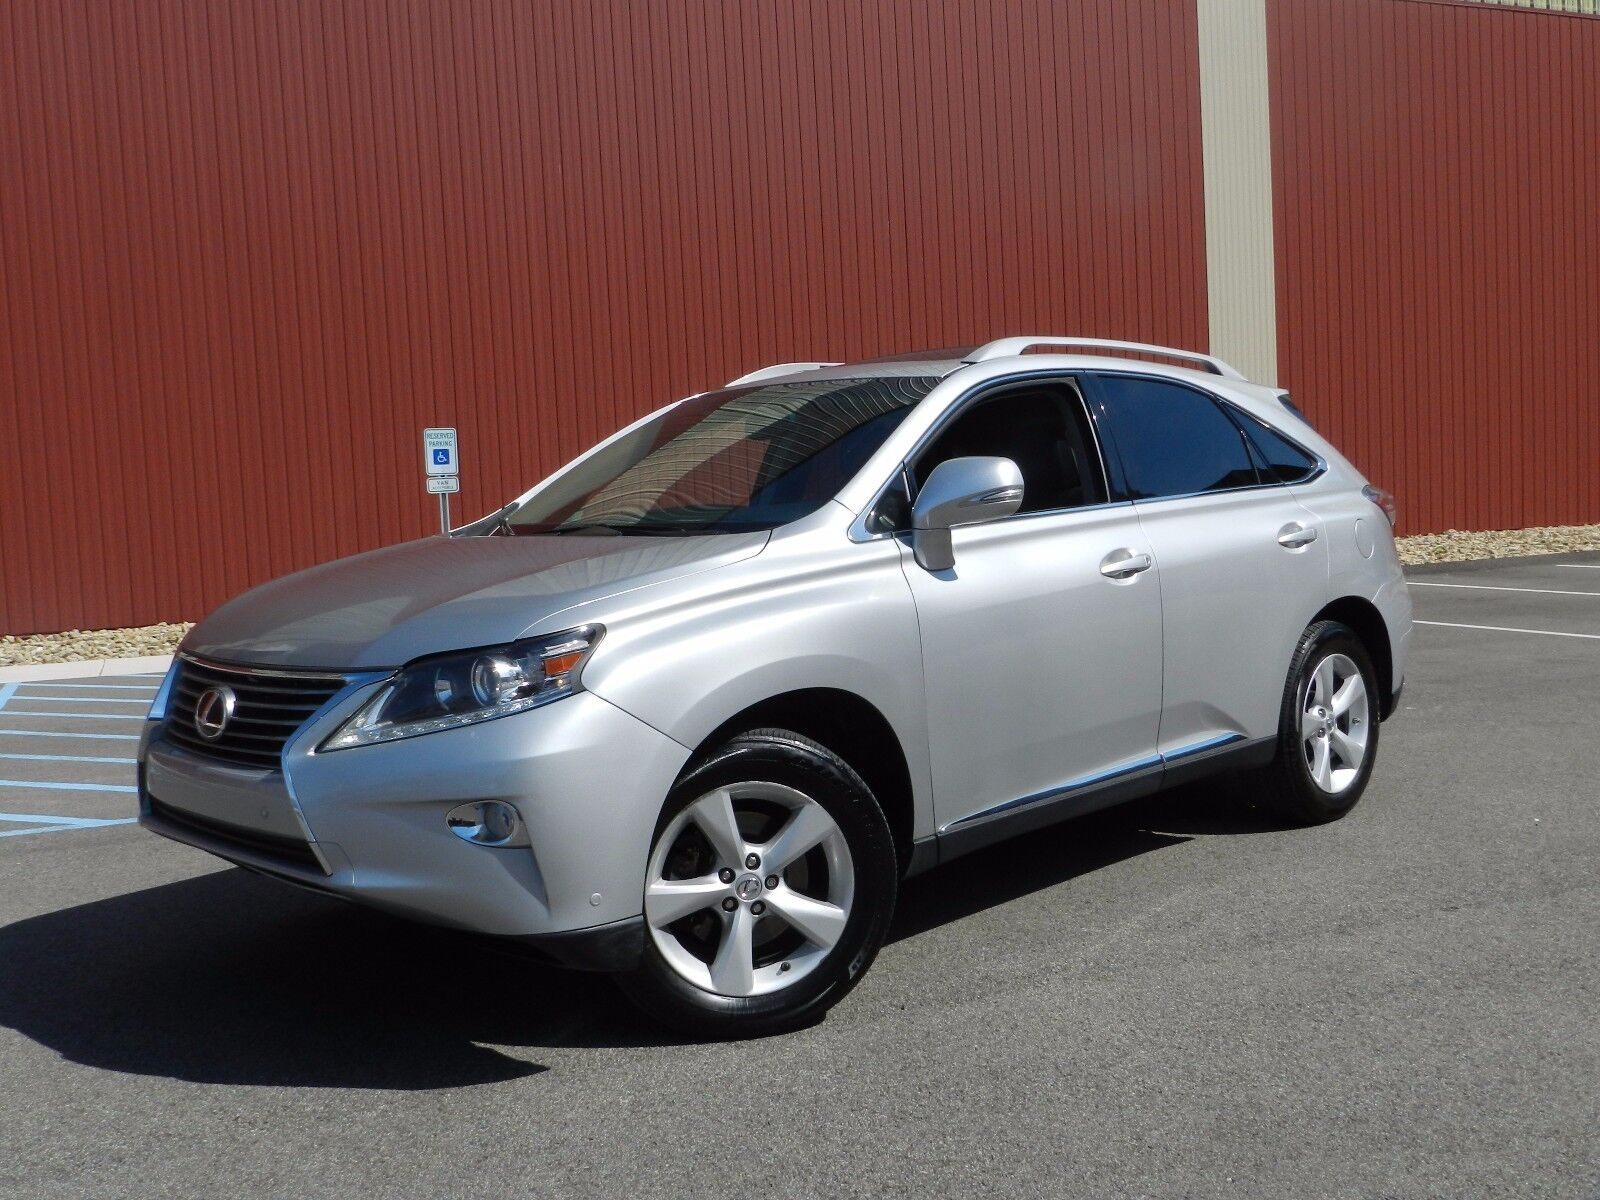 2015 lexus rx350 sport utility suv rx 350 awd rebuilt salvage title repairable for sale in. Black Bedroom Furniture Sets. Home Design Ideas